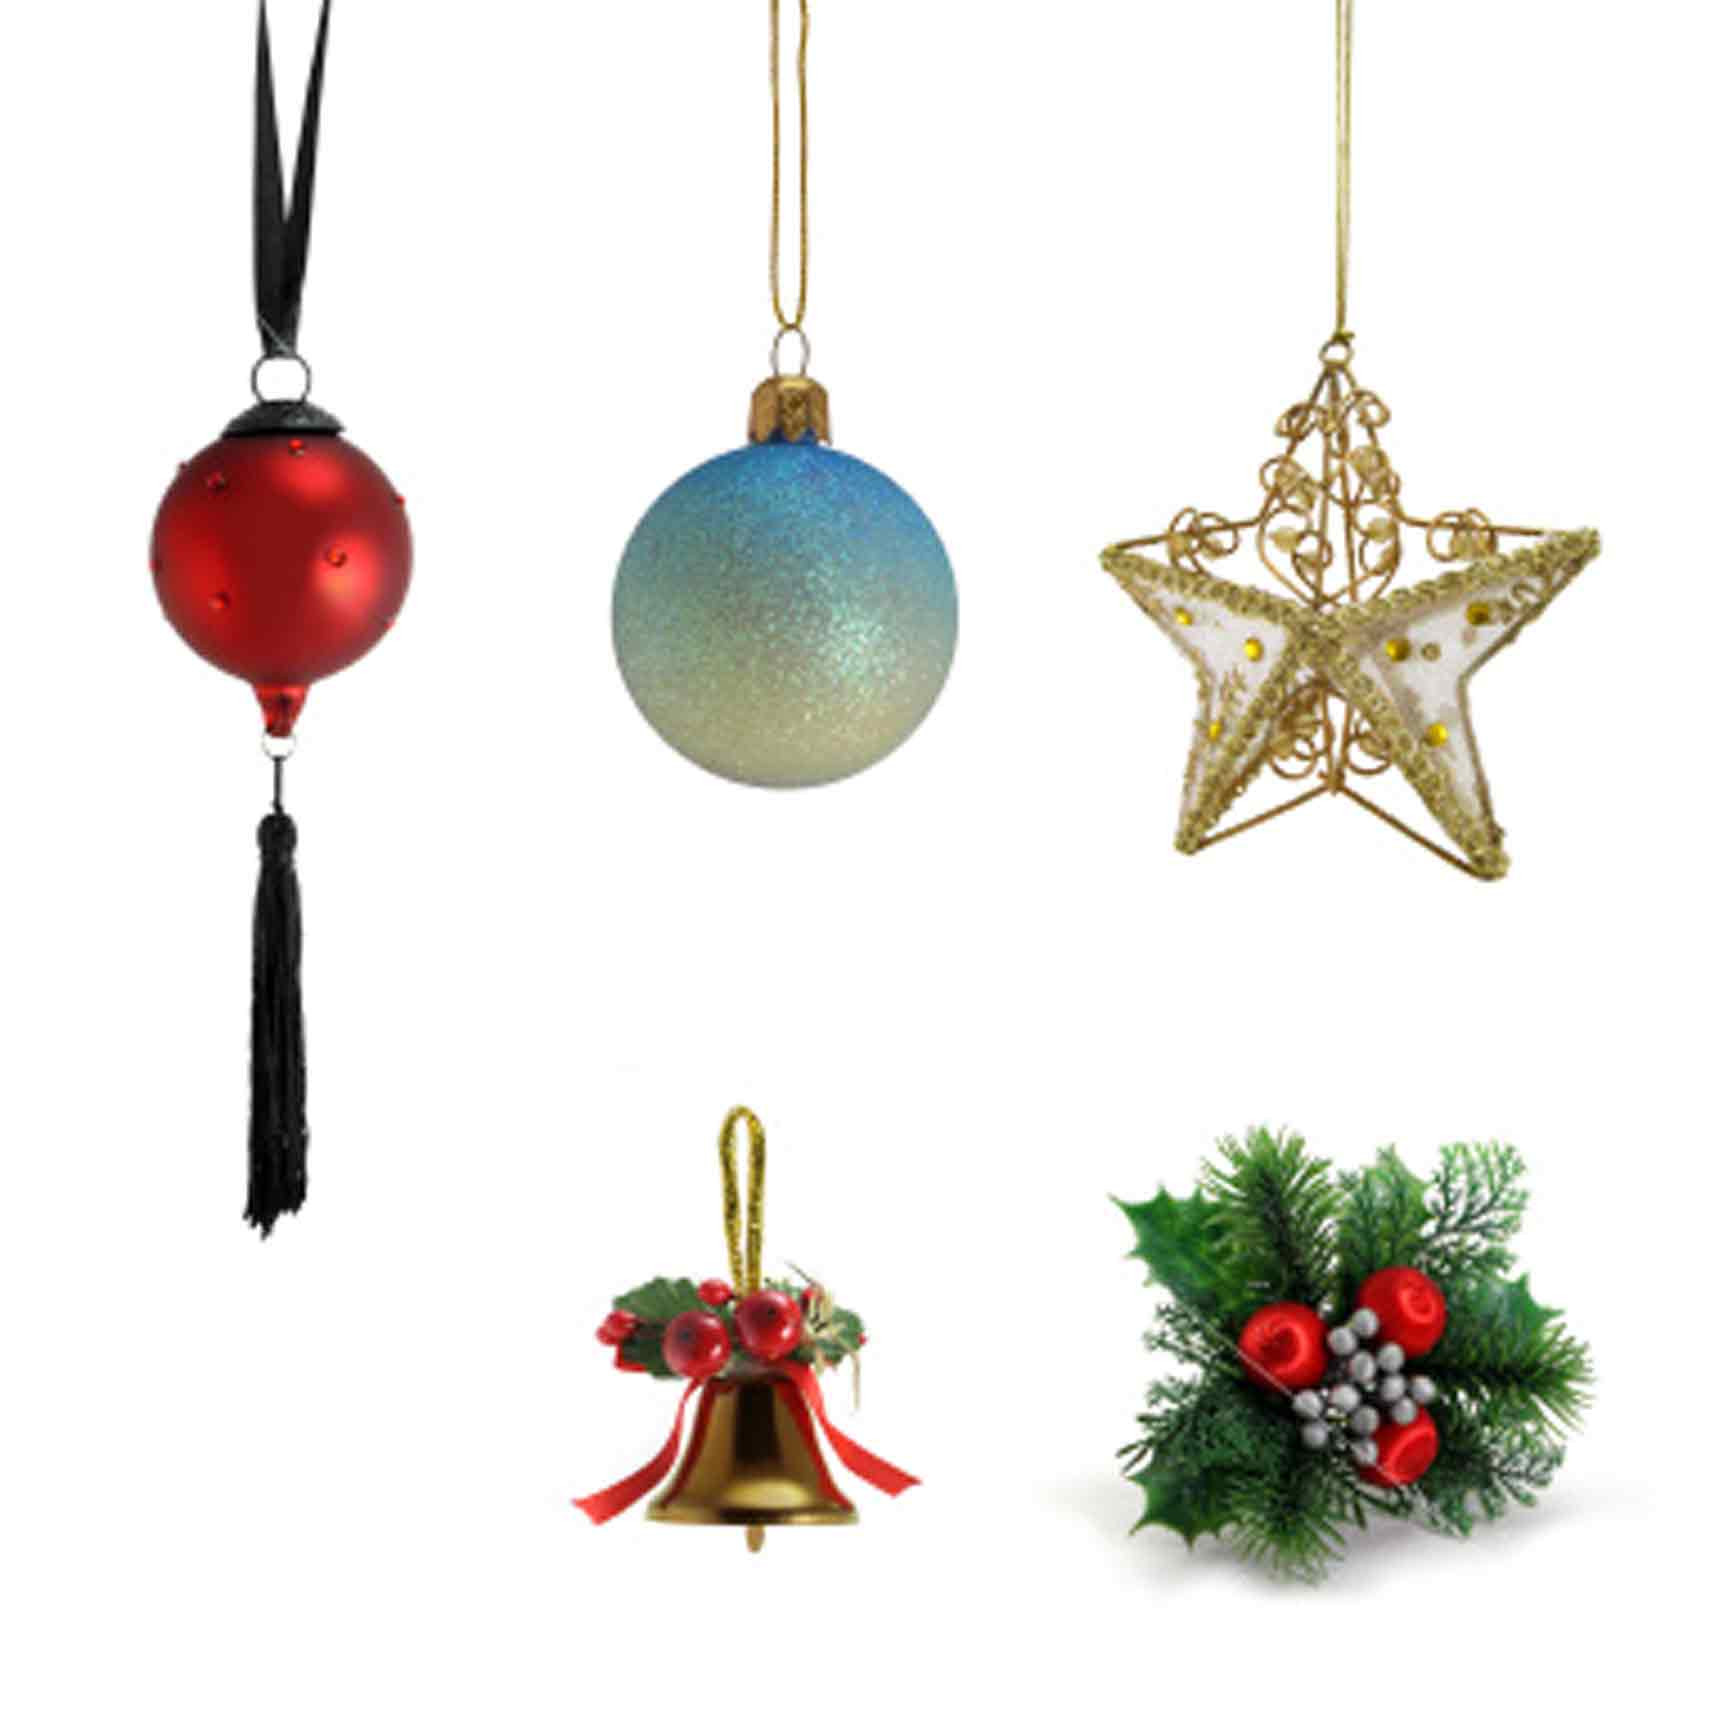 Christmas ornaments Inspirational Christmas ornaments the Copper Candle Of Incredible 48 Images Christmas ornaments